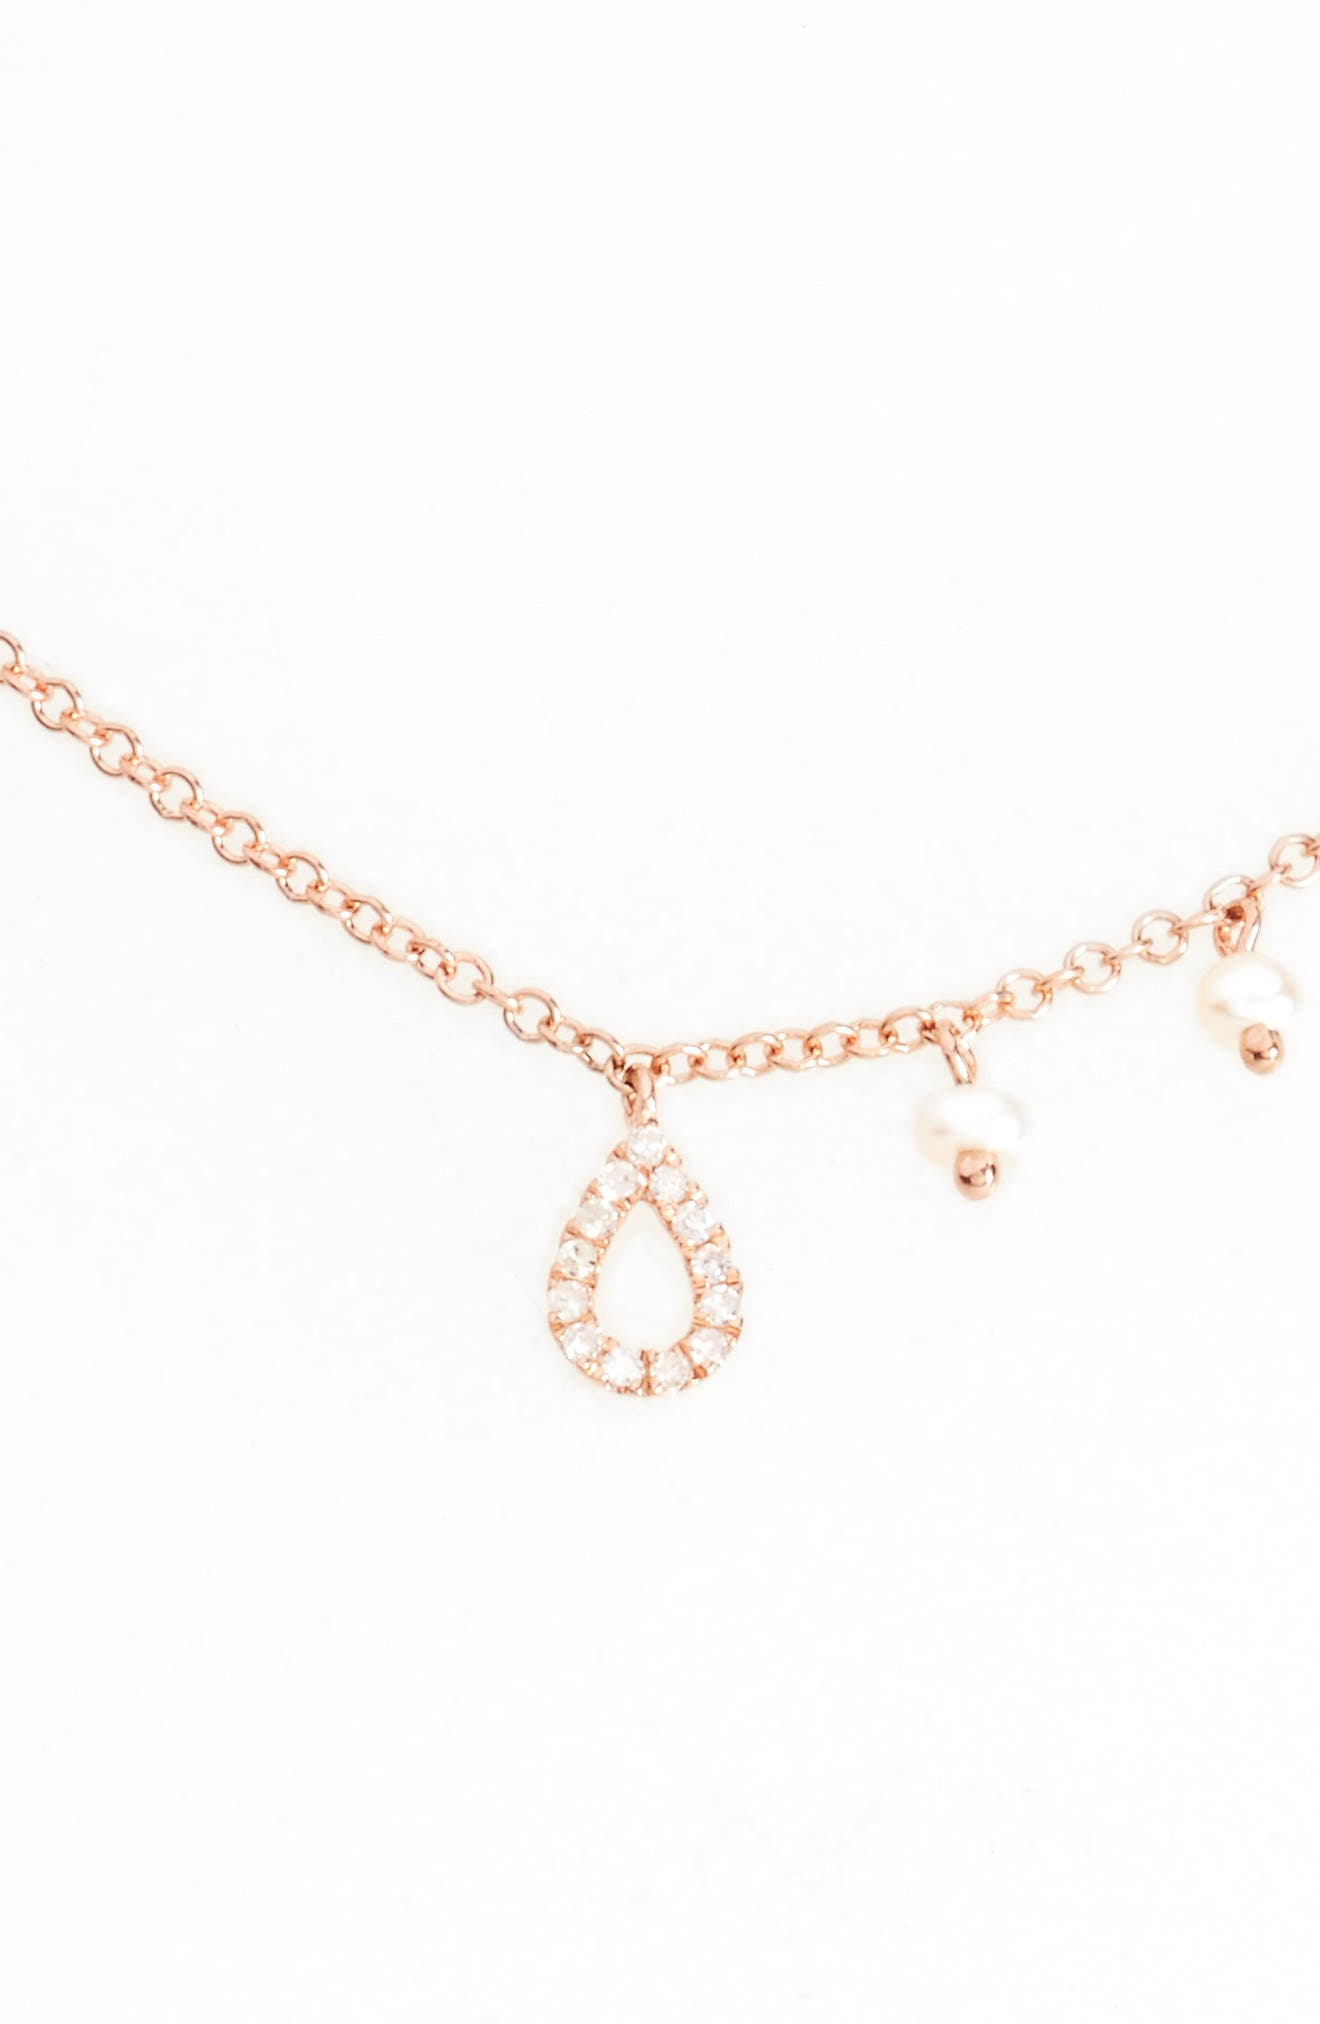 Diamond Teardrop Charm Collar Necklace,                             Main thumbnail 1, color,                             ROSE GOLD